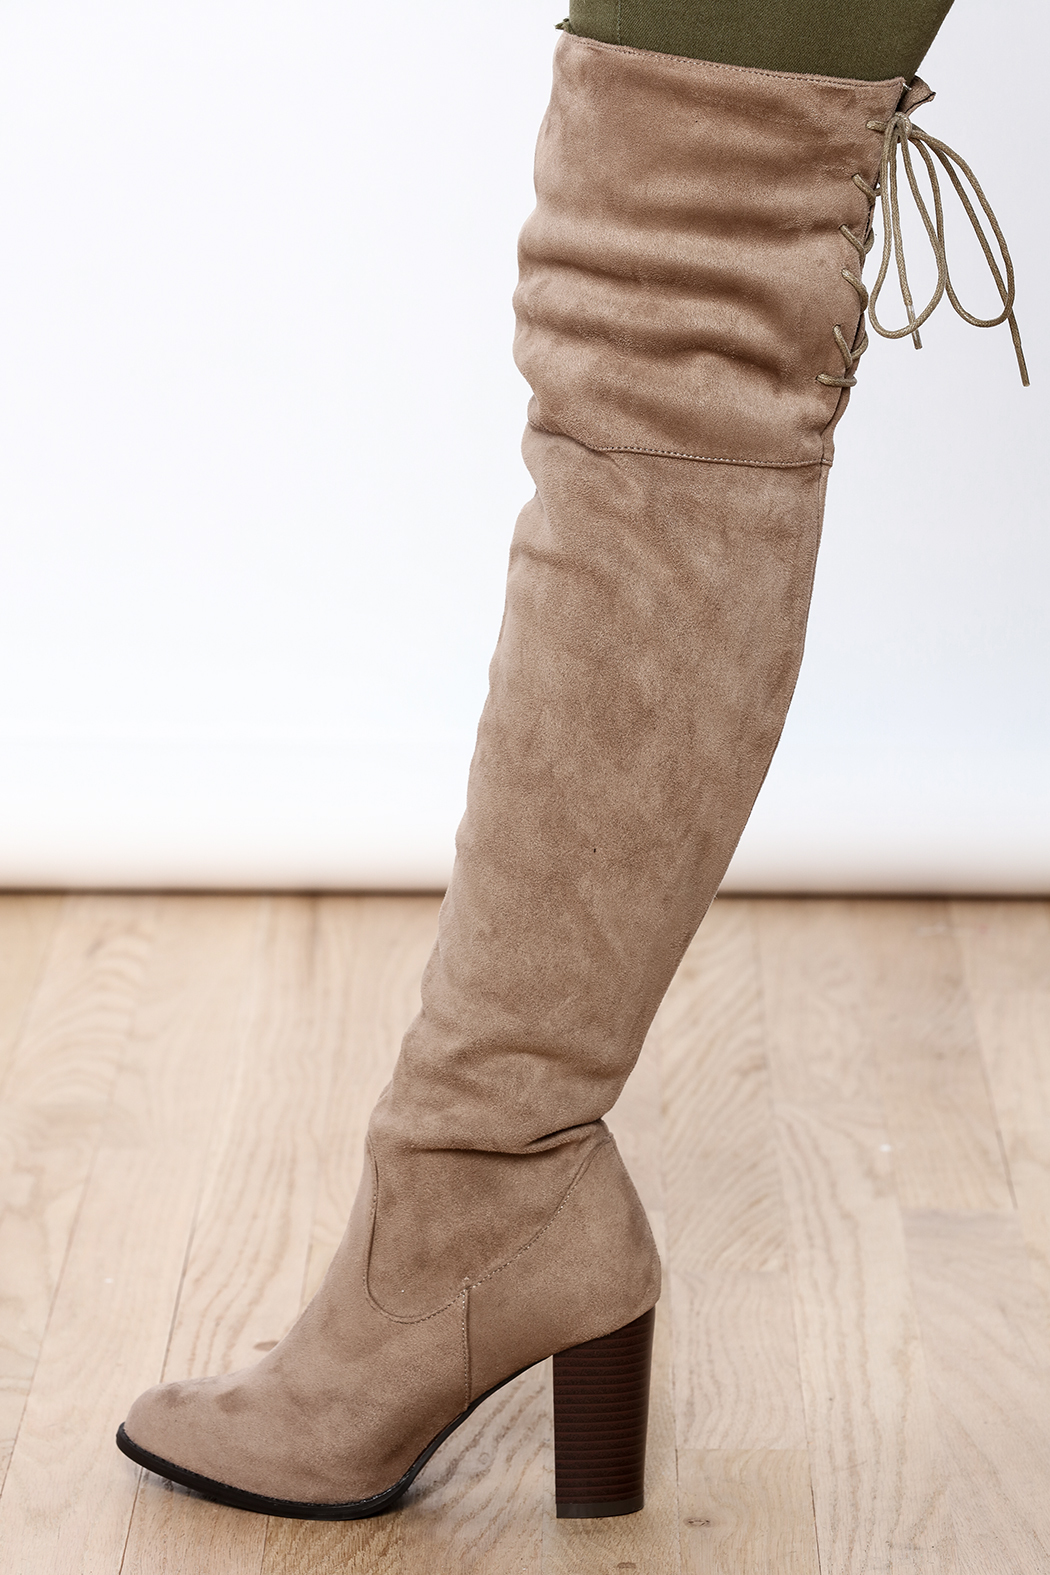 b04fe8276c82 Qupid Zinc Over Knee Boot from Nebraska by beyourself boutique ...